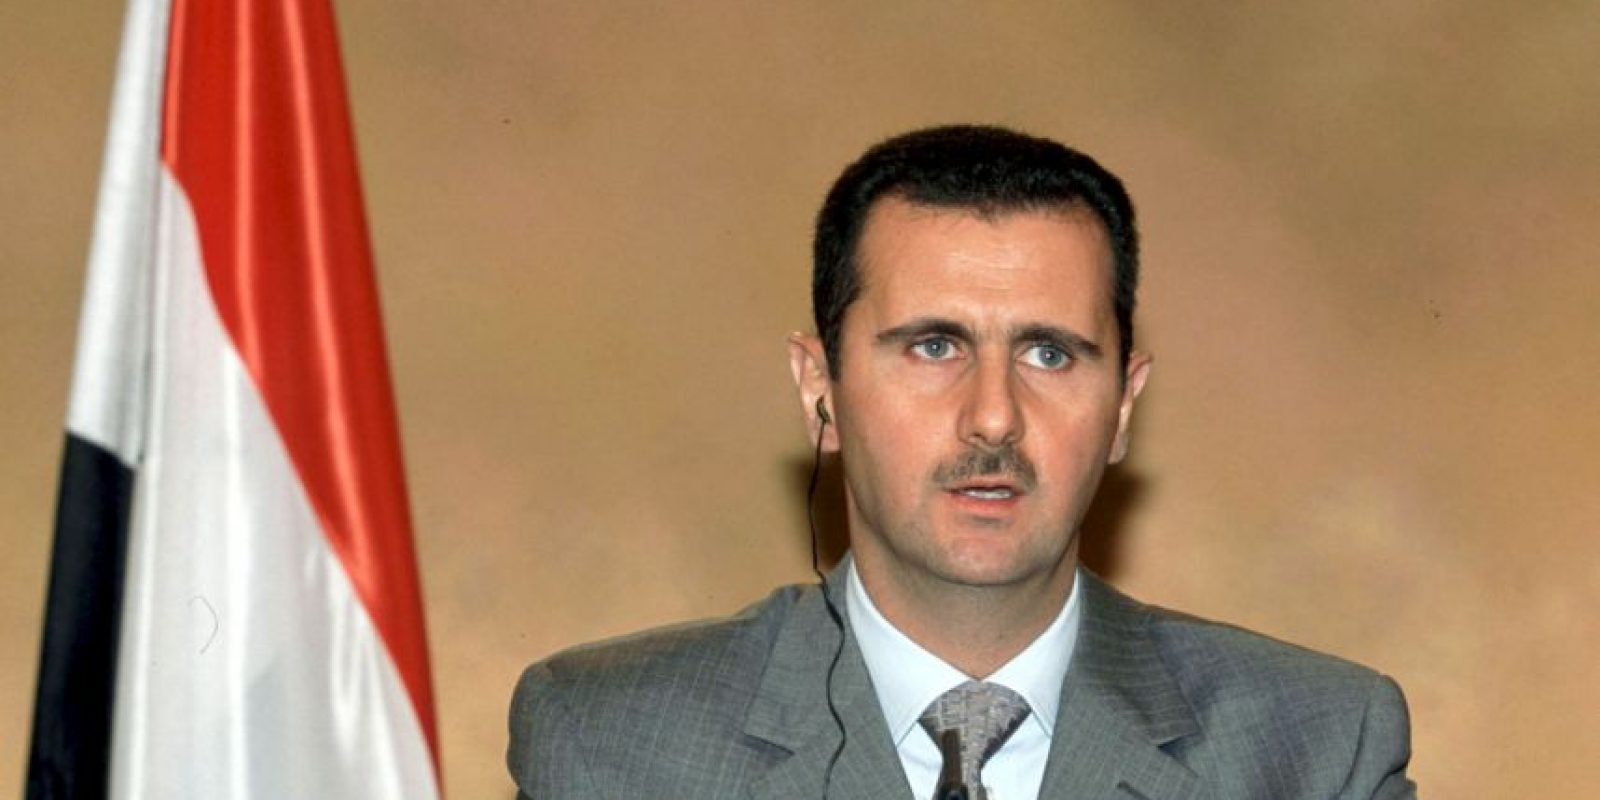 2. Las relaciones internacionales de Bashar Al-Assad Foto: Getty Images